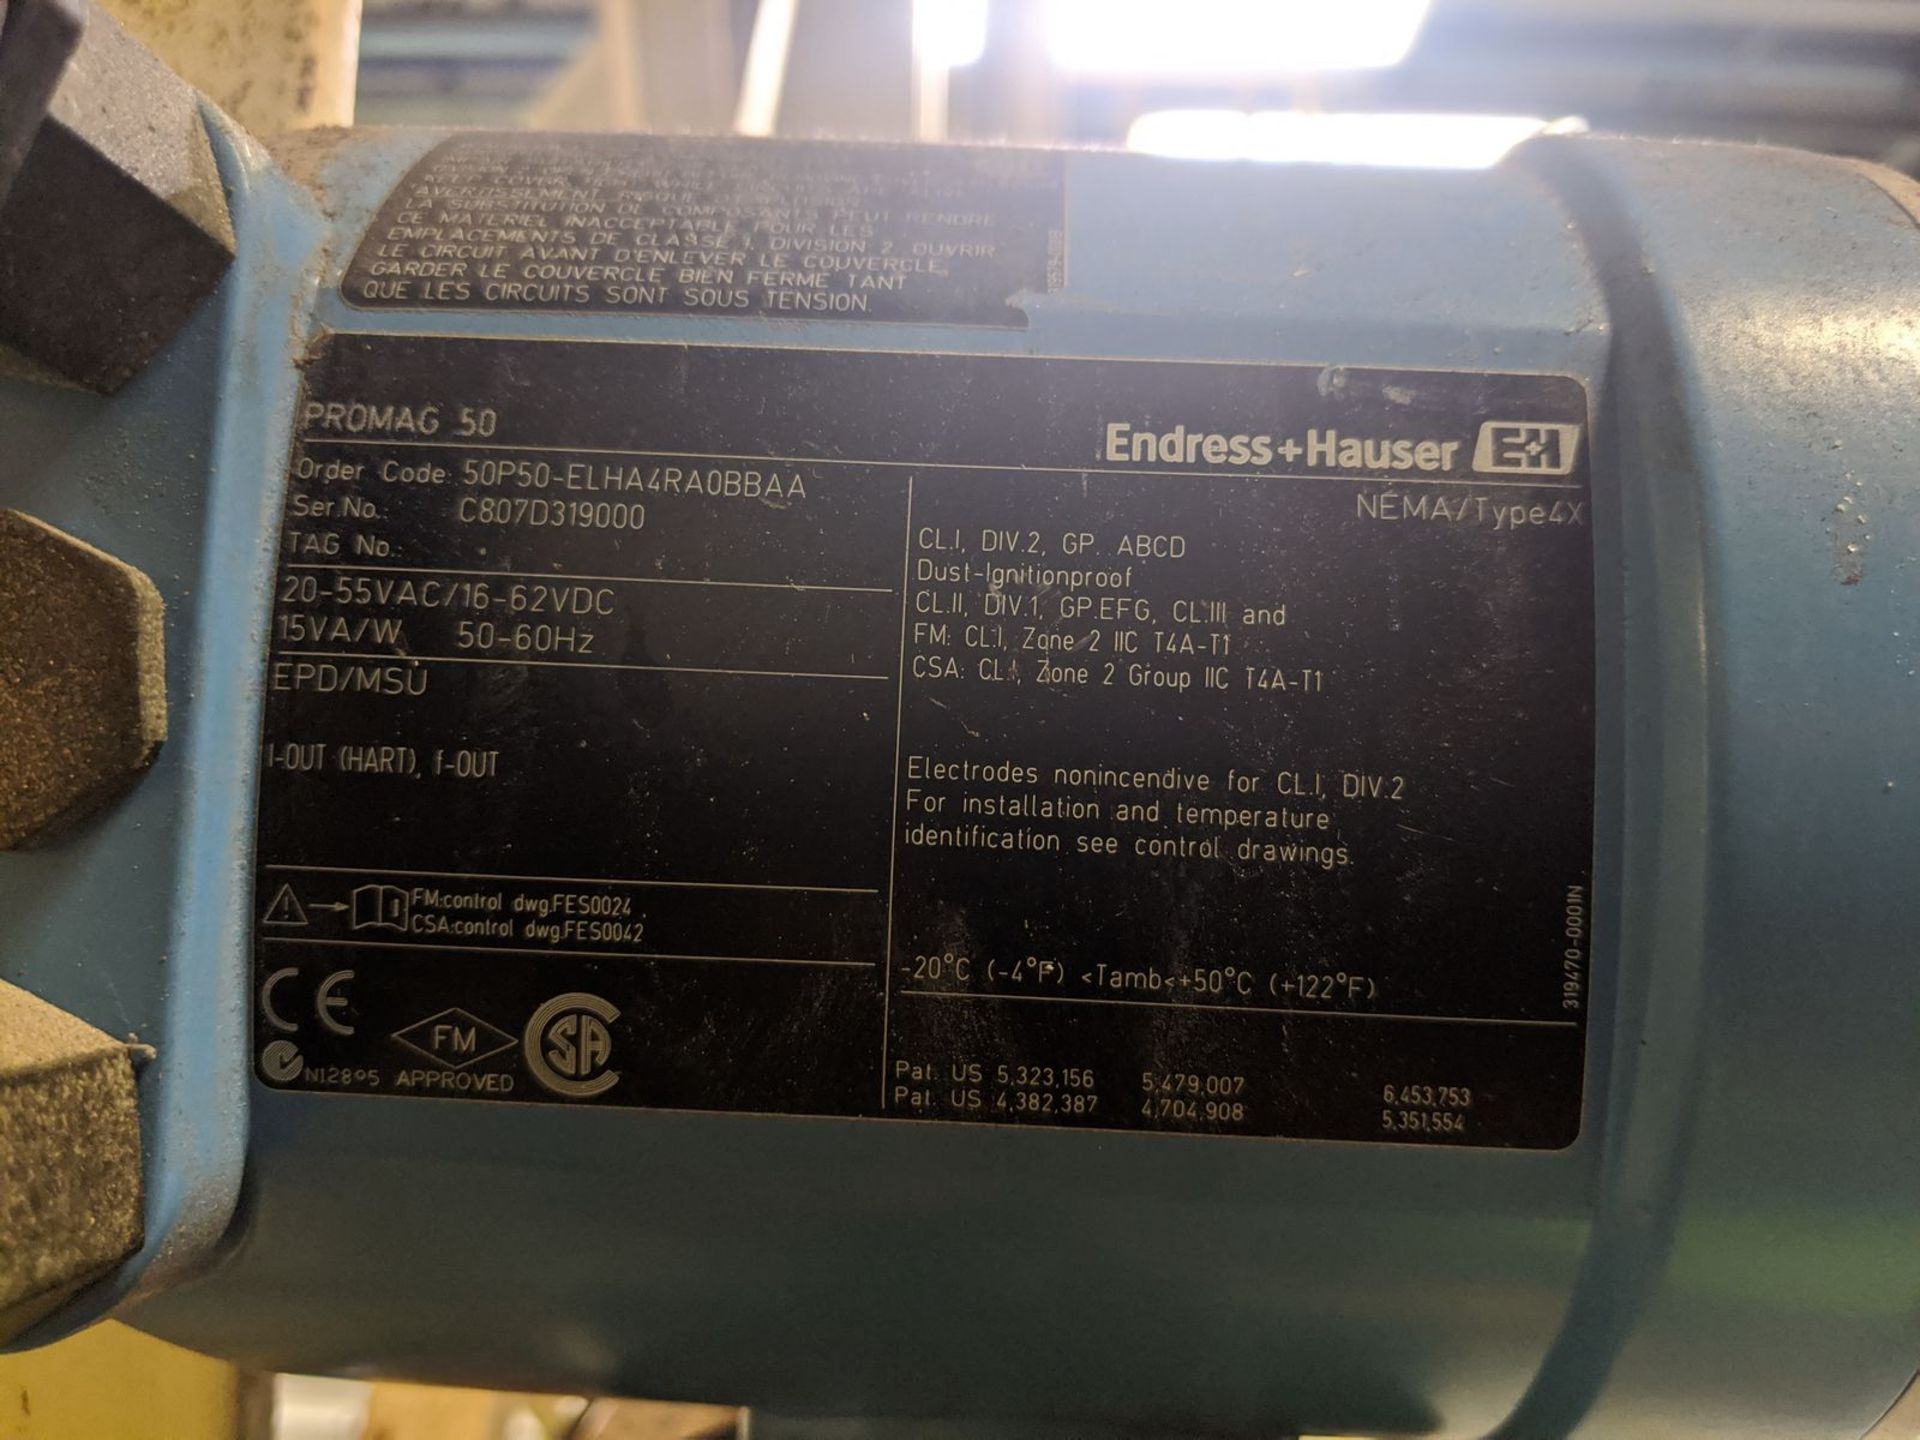 Endress+Hauser Model Promag 50 Electromagnetic Flowmeter - Image 2 of 2